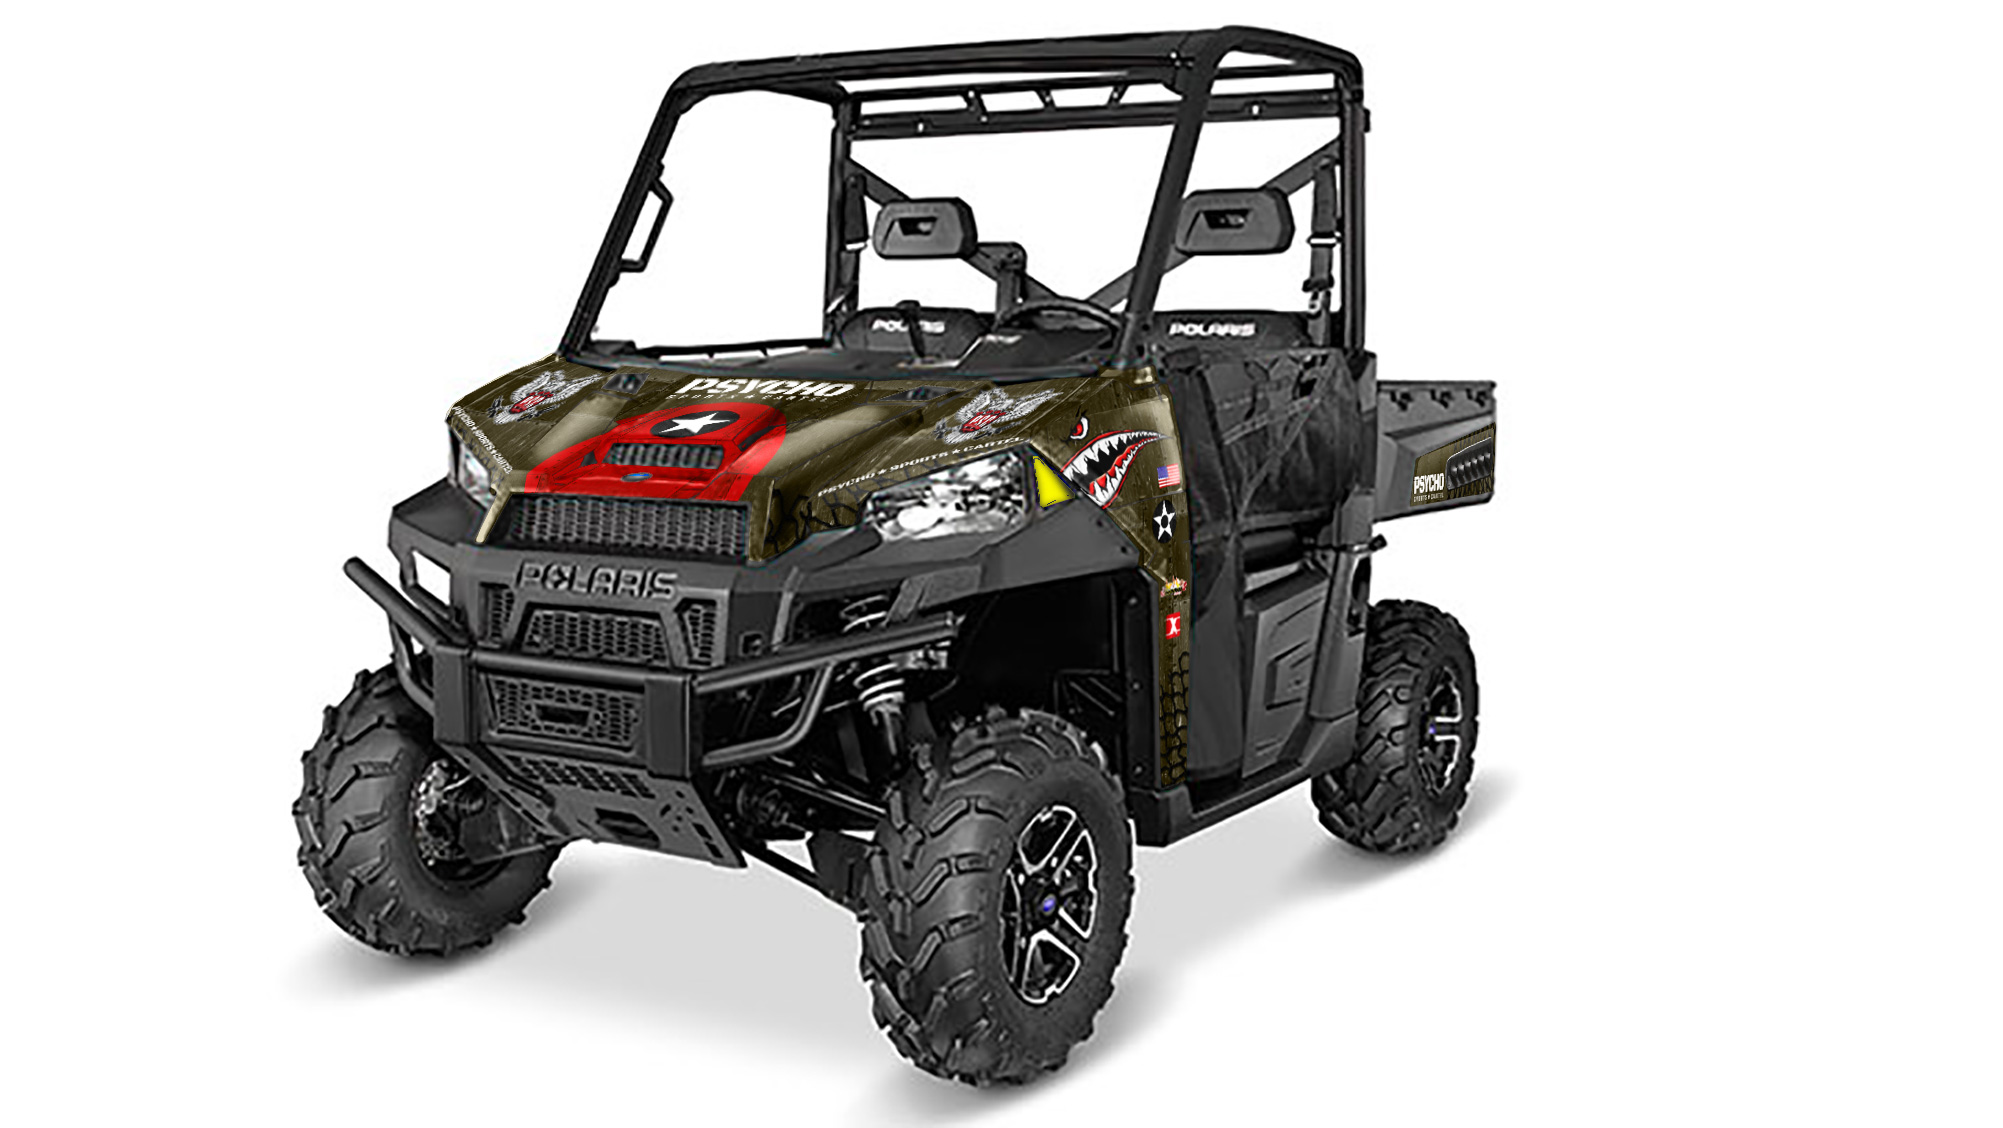 utv side by side sled war hawk series psycho sports cartel. Black Bedroom Furniture Sets. Home Design Ideas